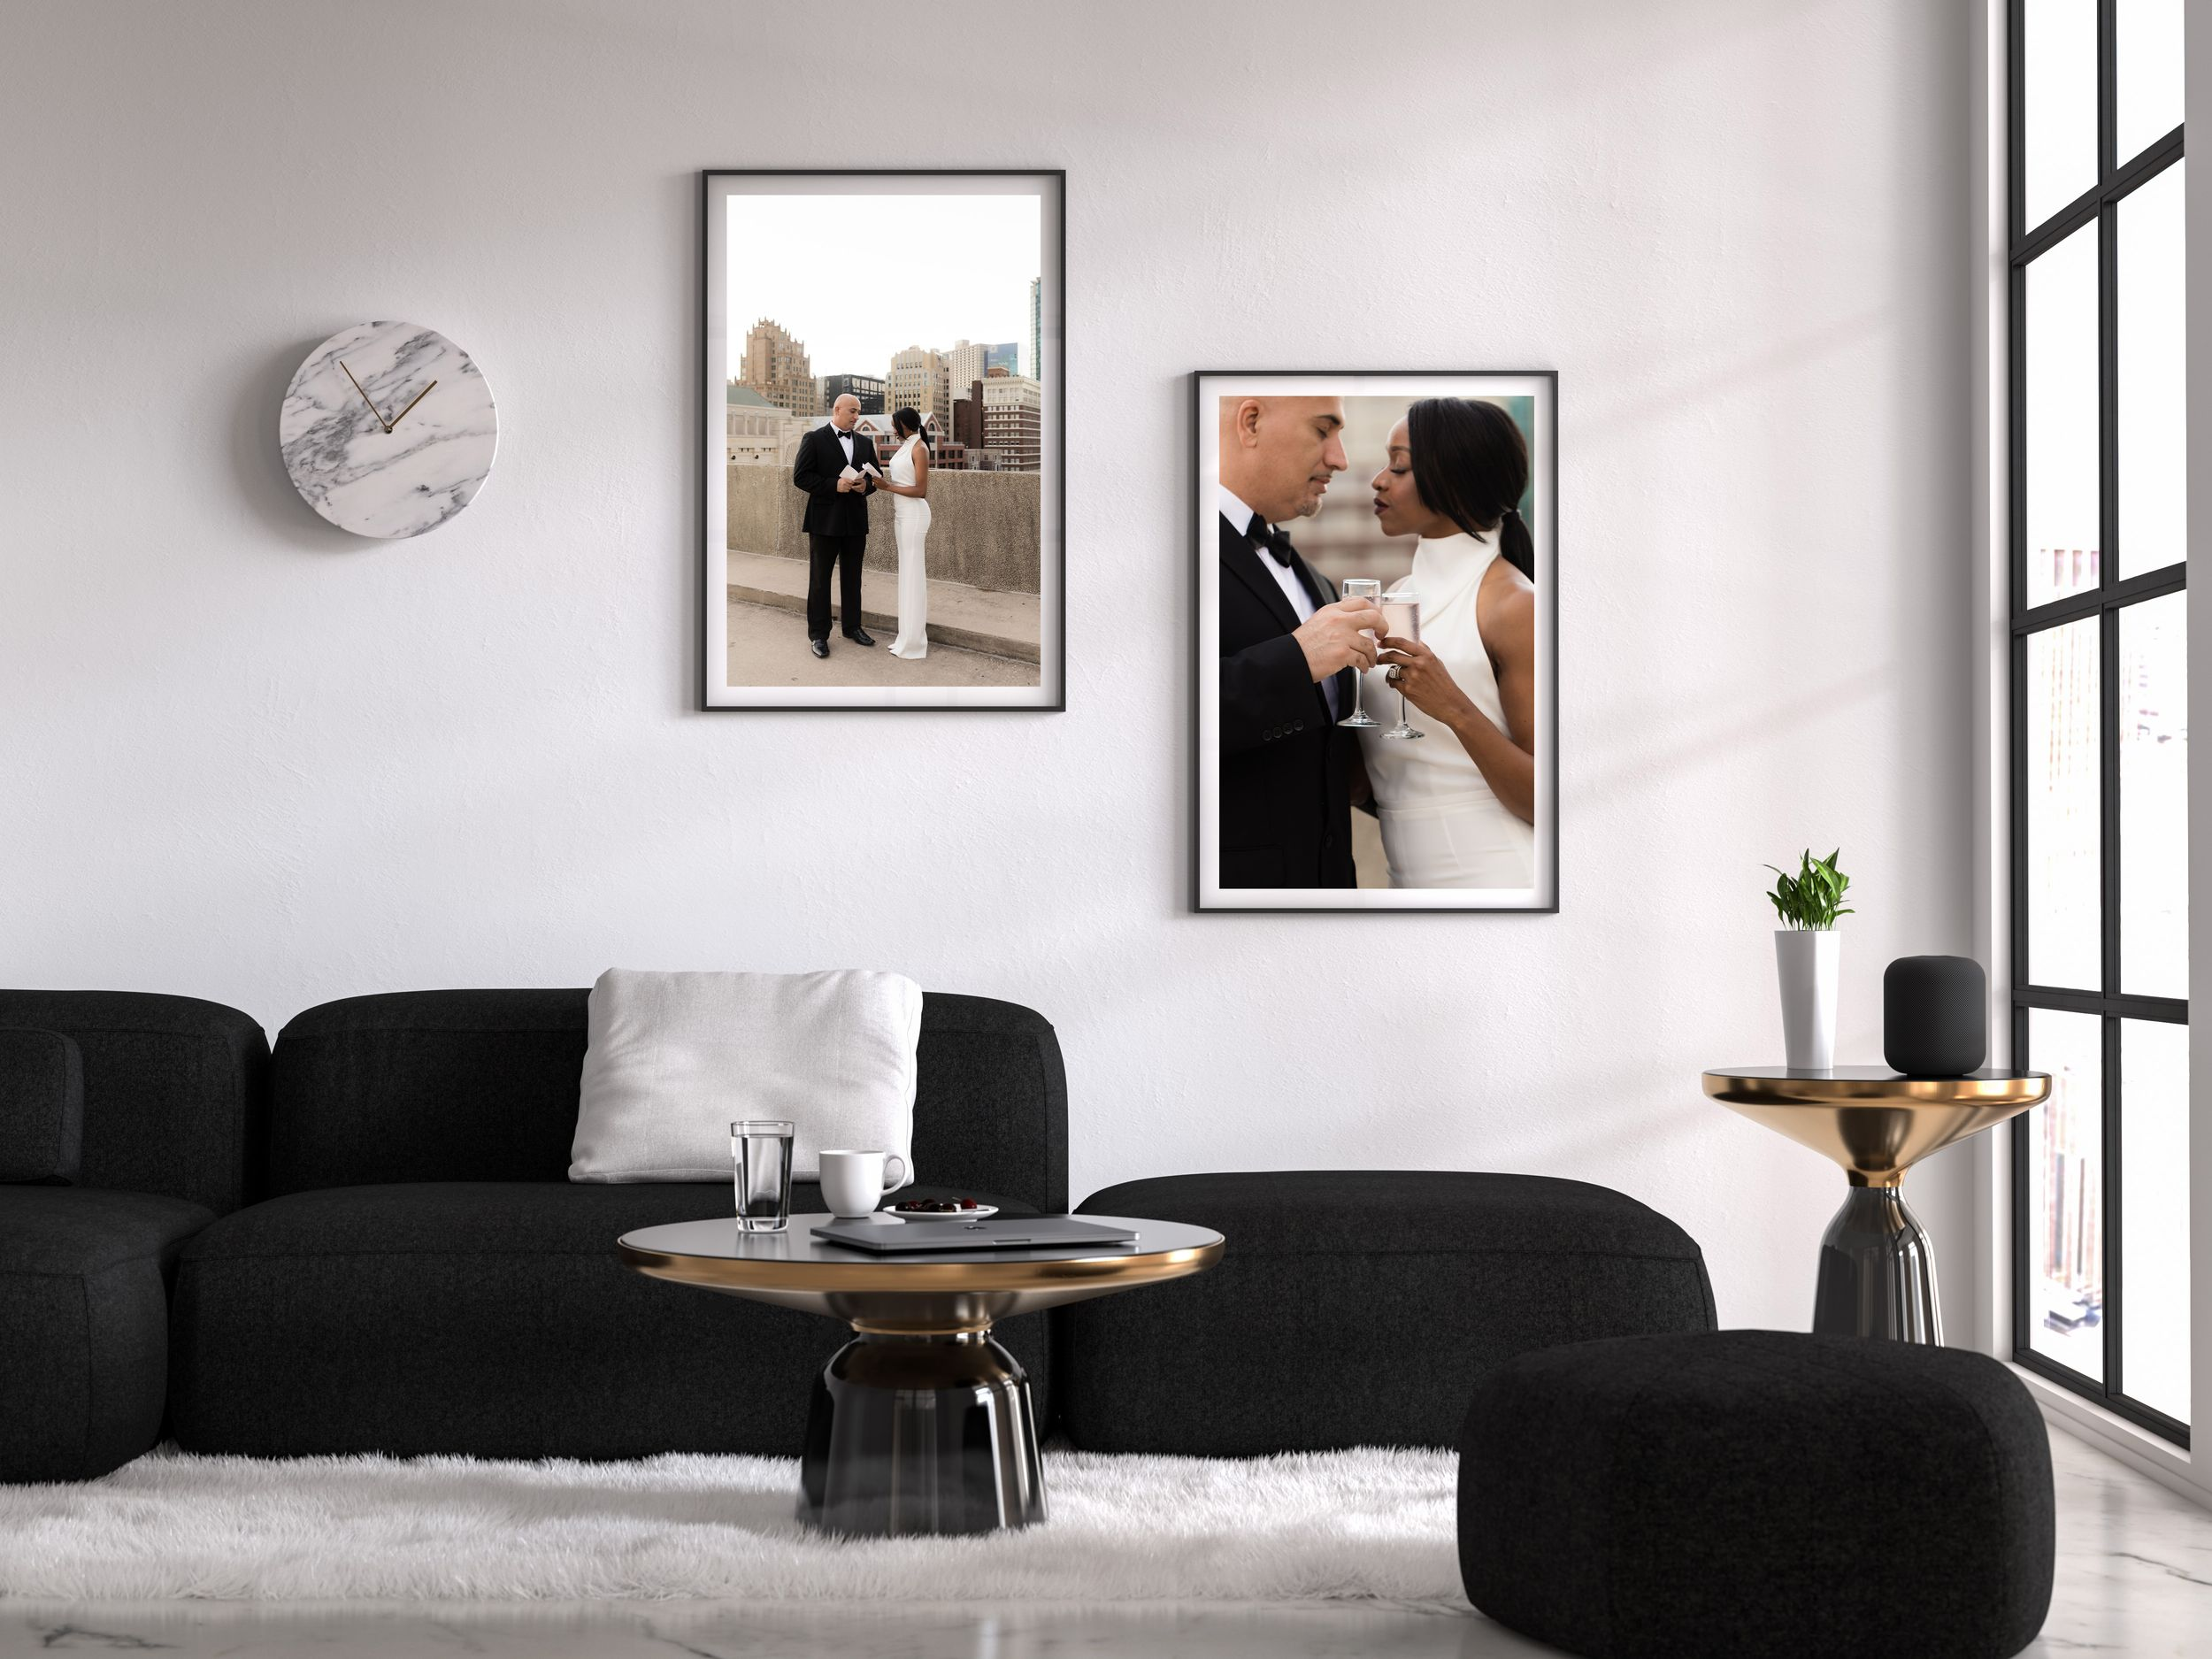 Printed Photography Wall Art in the Home.